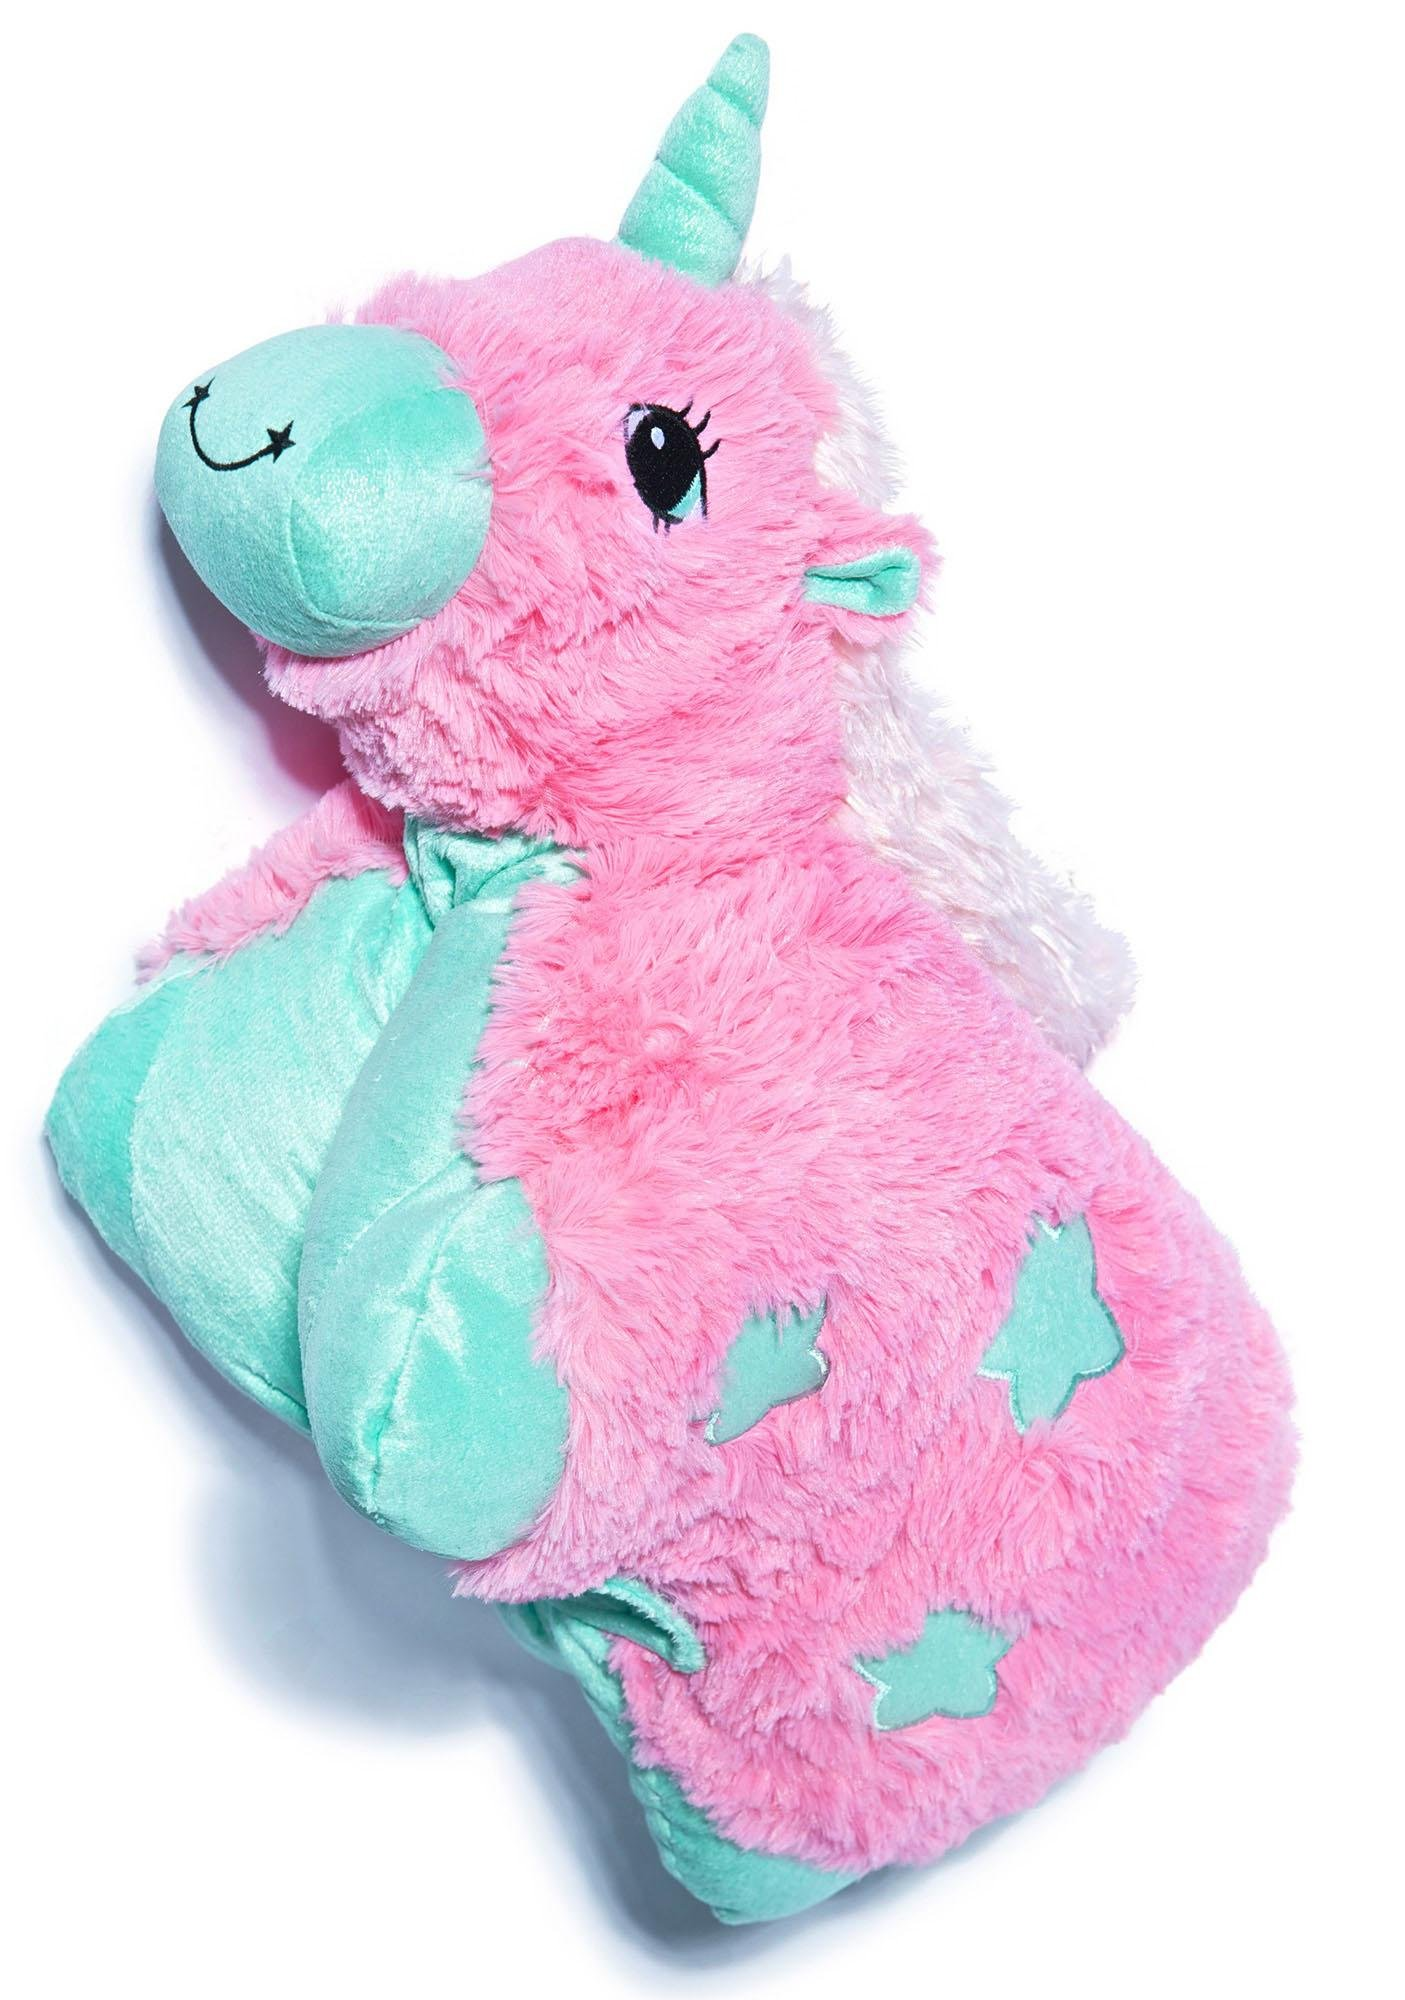 Pillow Pets Mystical Unicorn Pillow